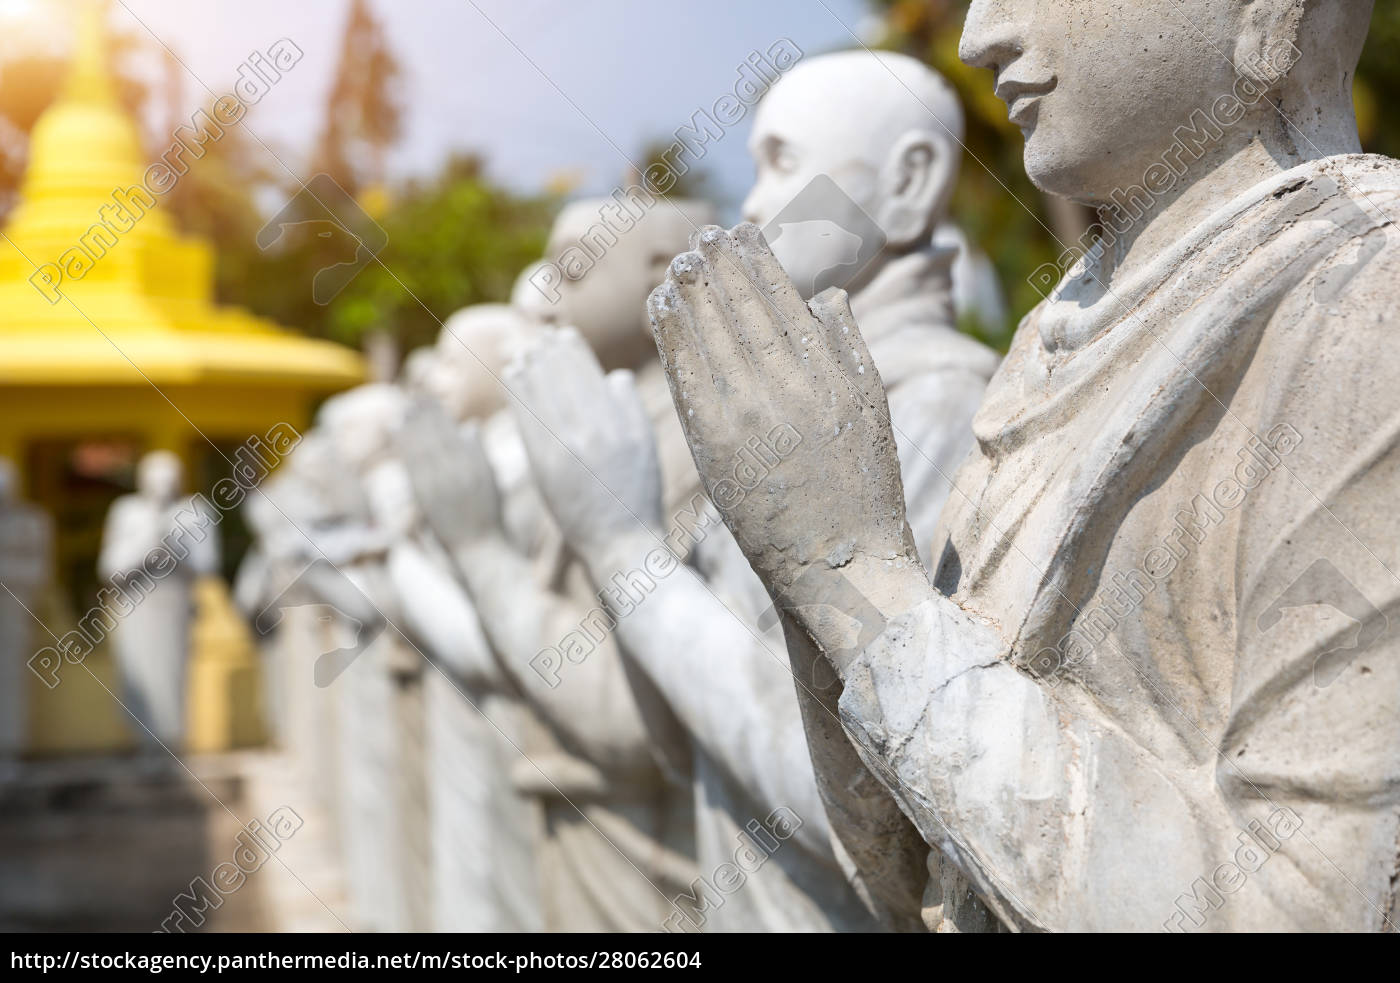 buddha, statues, in, a, temple, on - 28062604